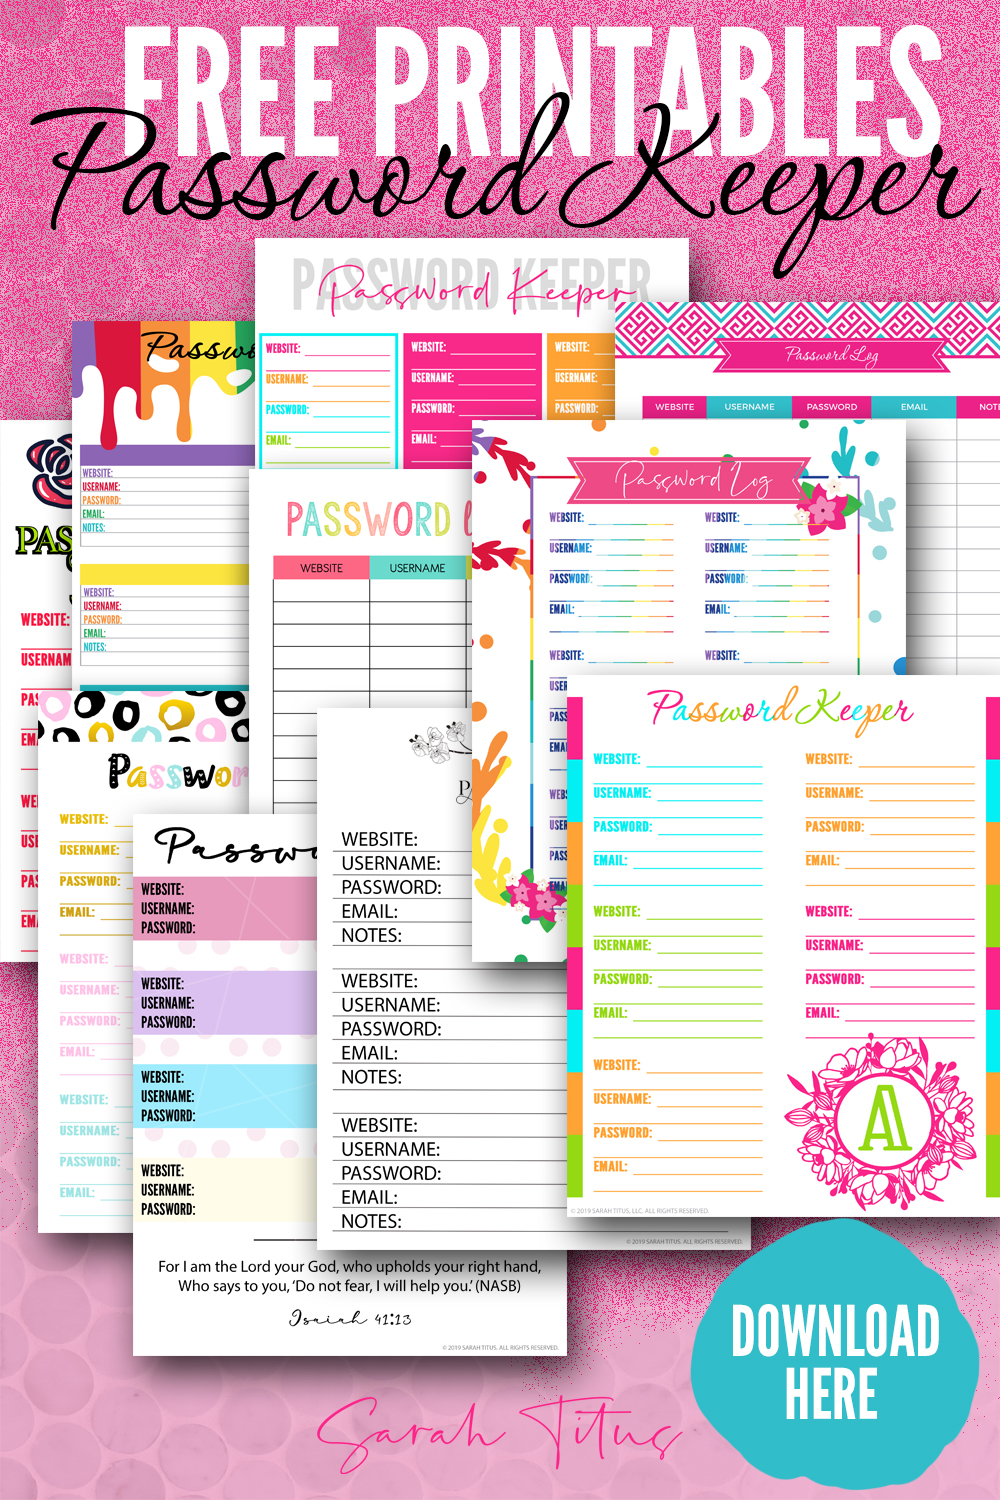 photo about Printable Password Keeper called Best Pword Keeper Totally free Printables toward Down load Abruptly